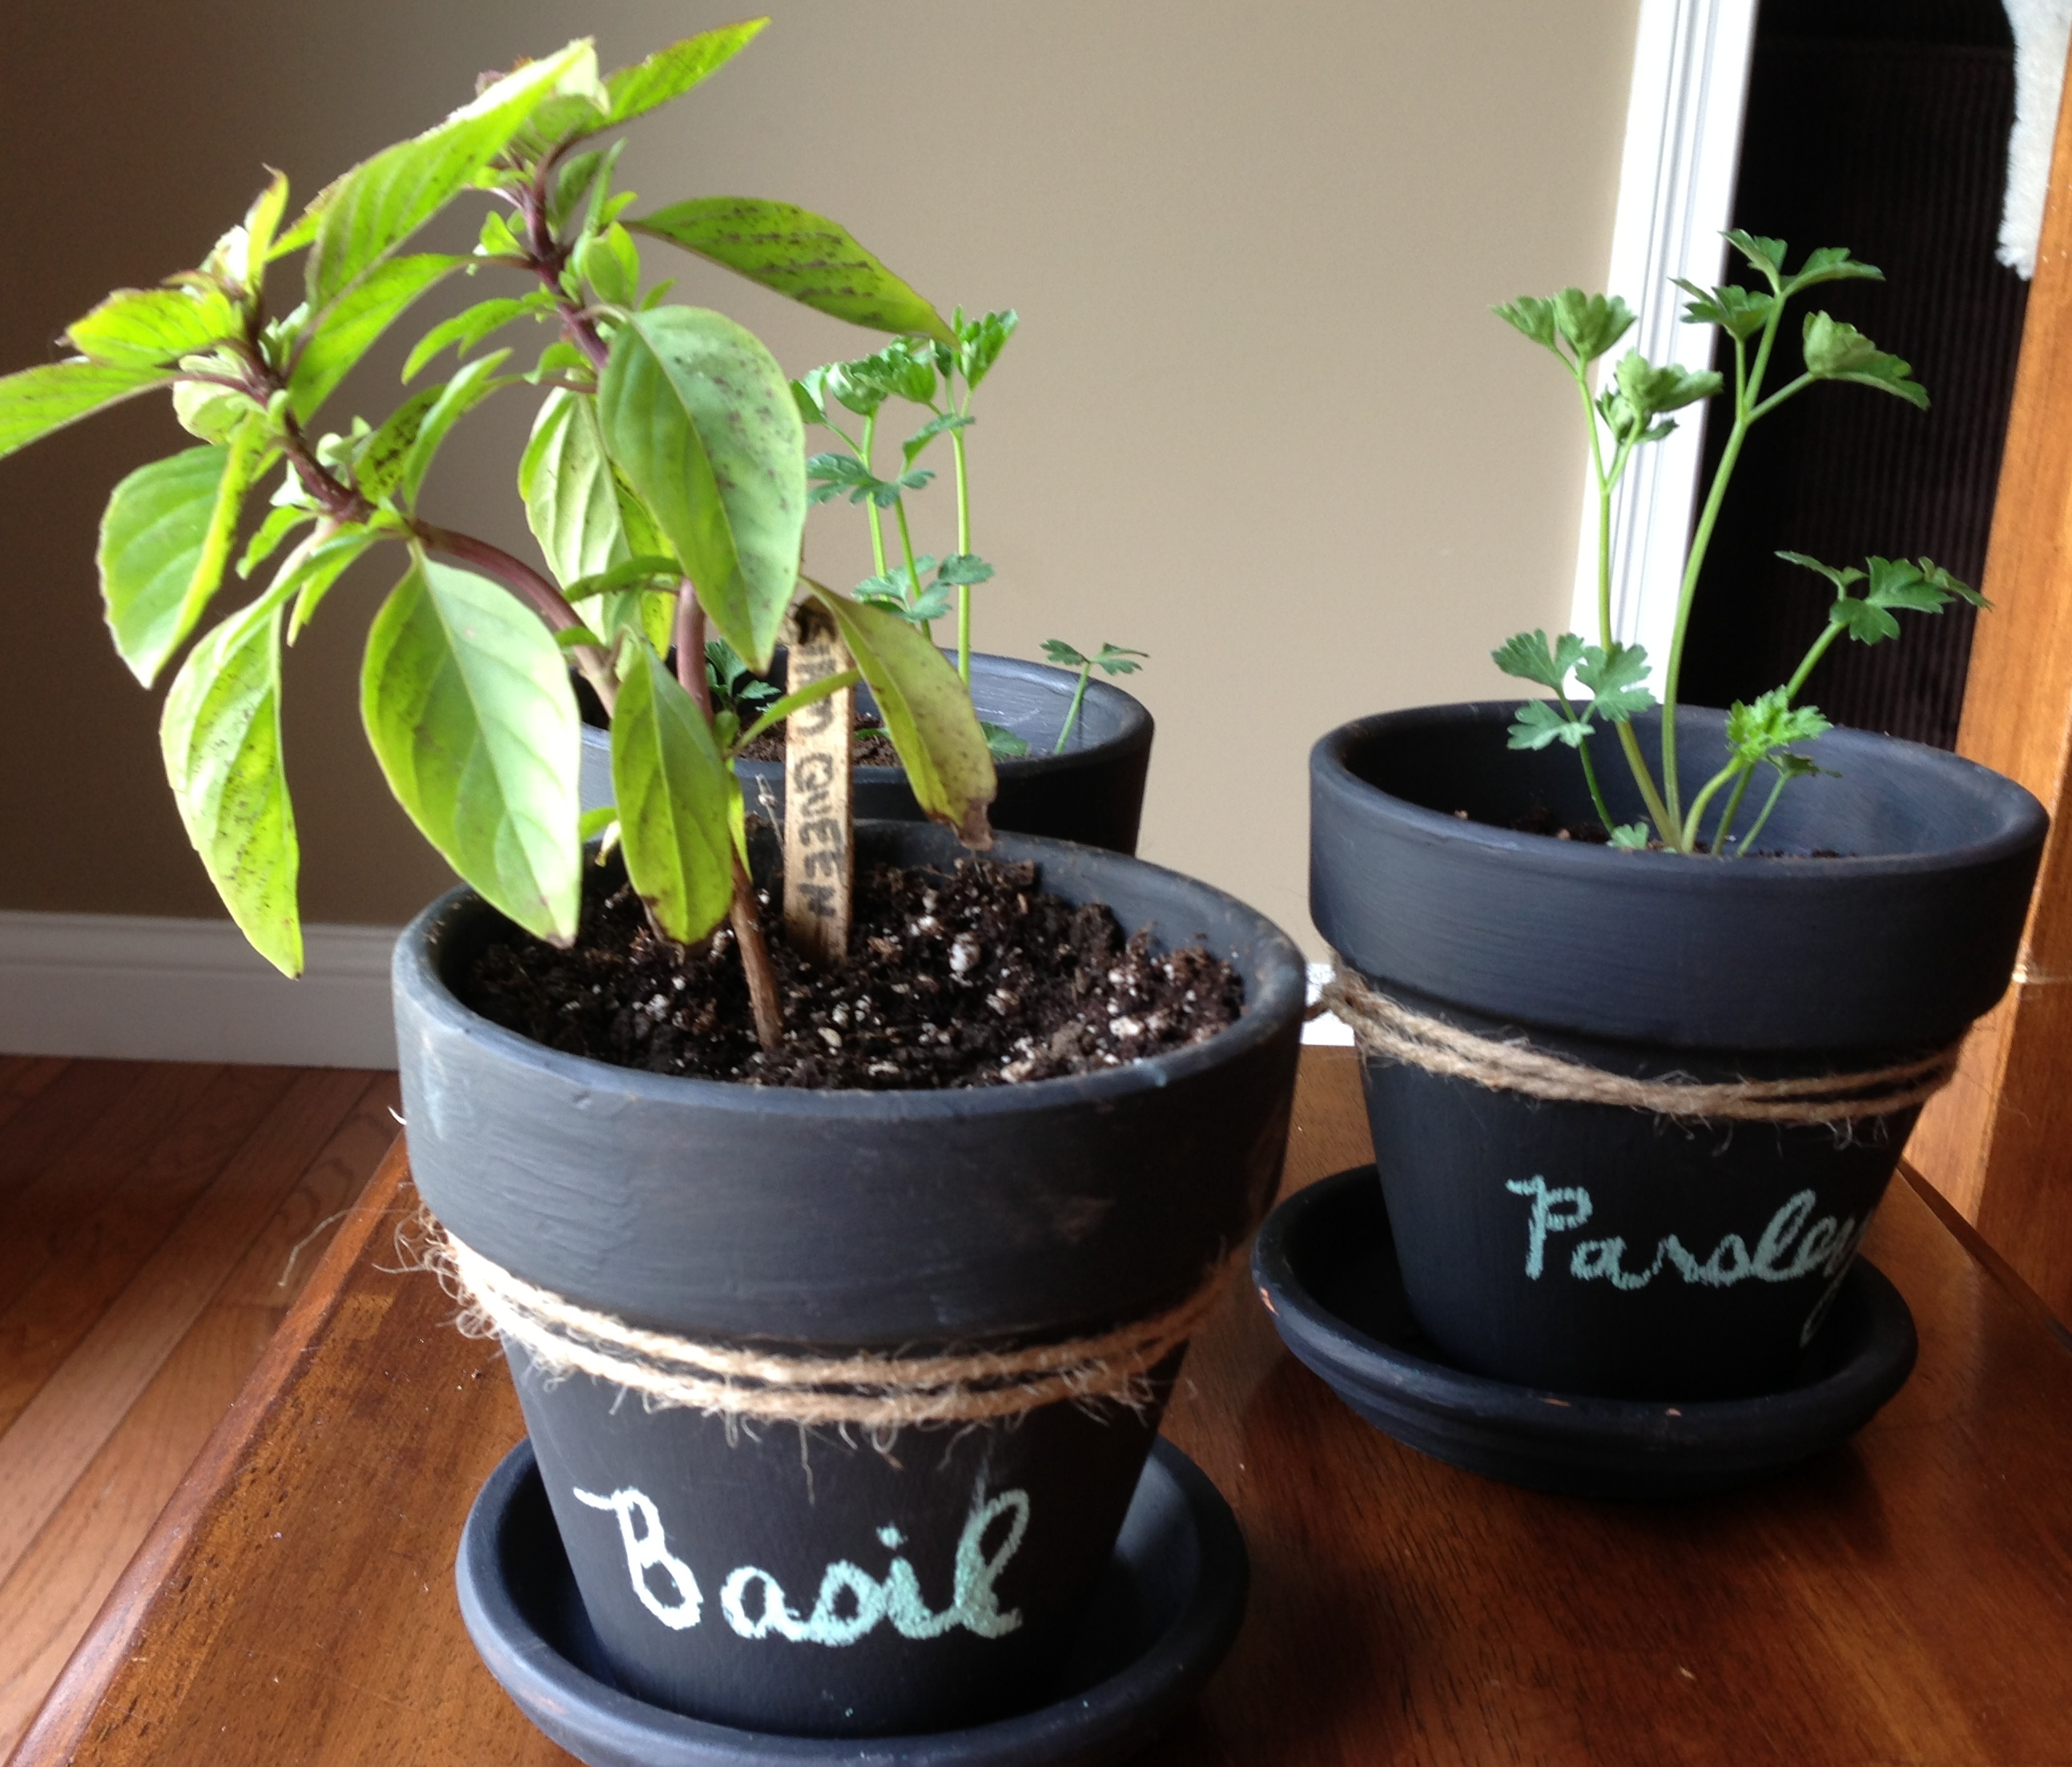 Wellness Inspired Gift Idea: Chalkboard Potted Plants & Herbs ...